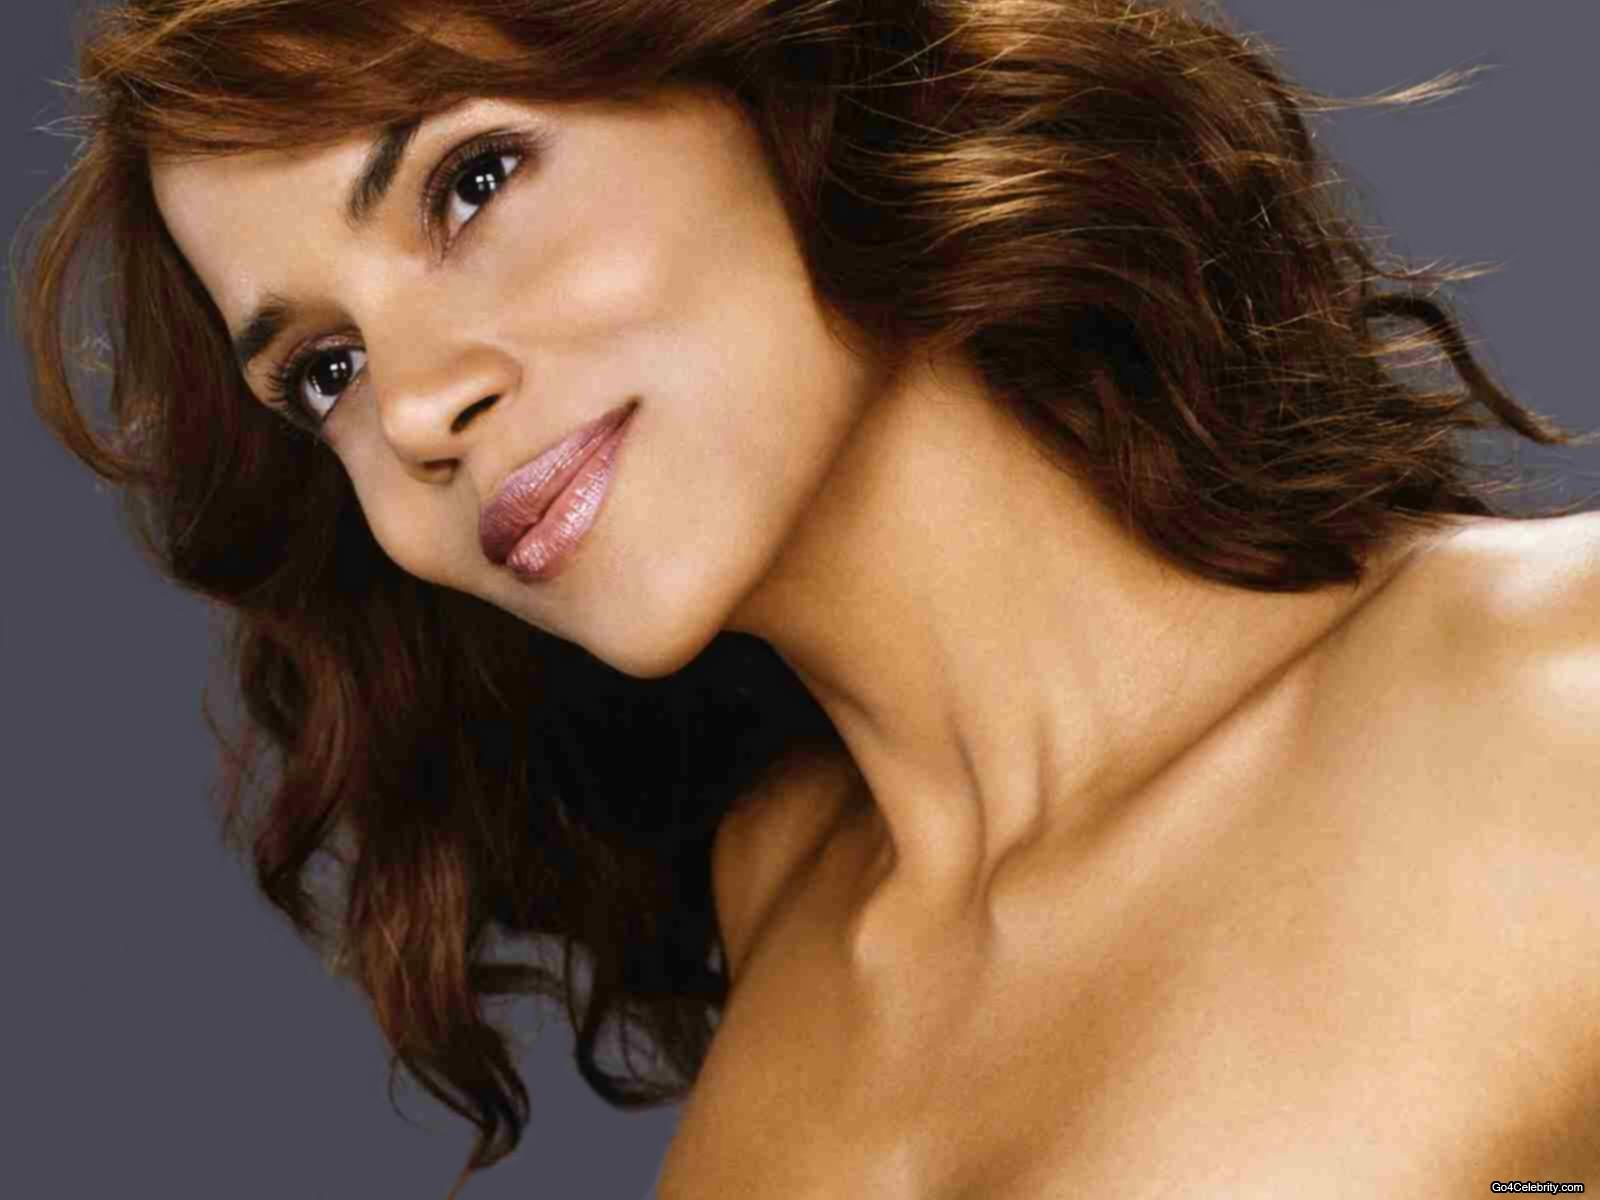 top-10-most-beautiful-women-in-the-world-2013-7-3205672